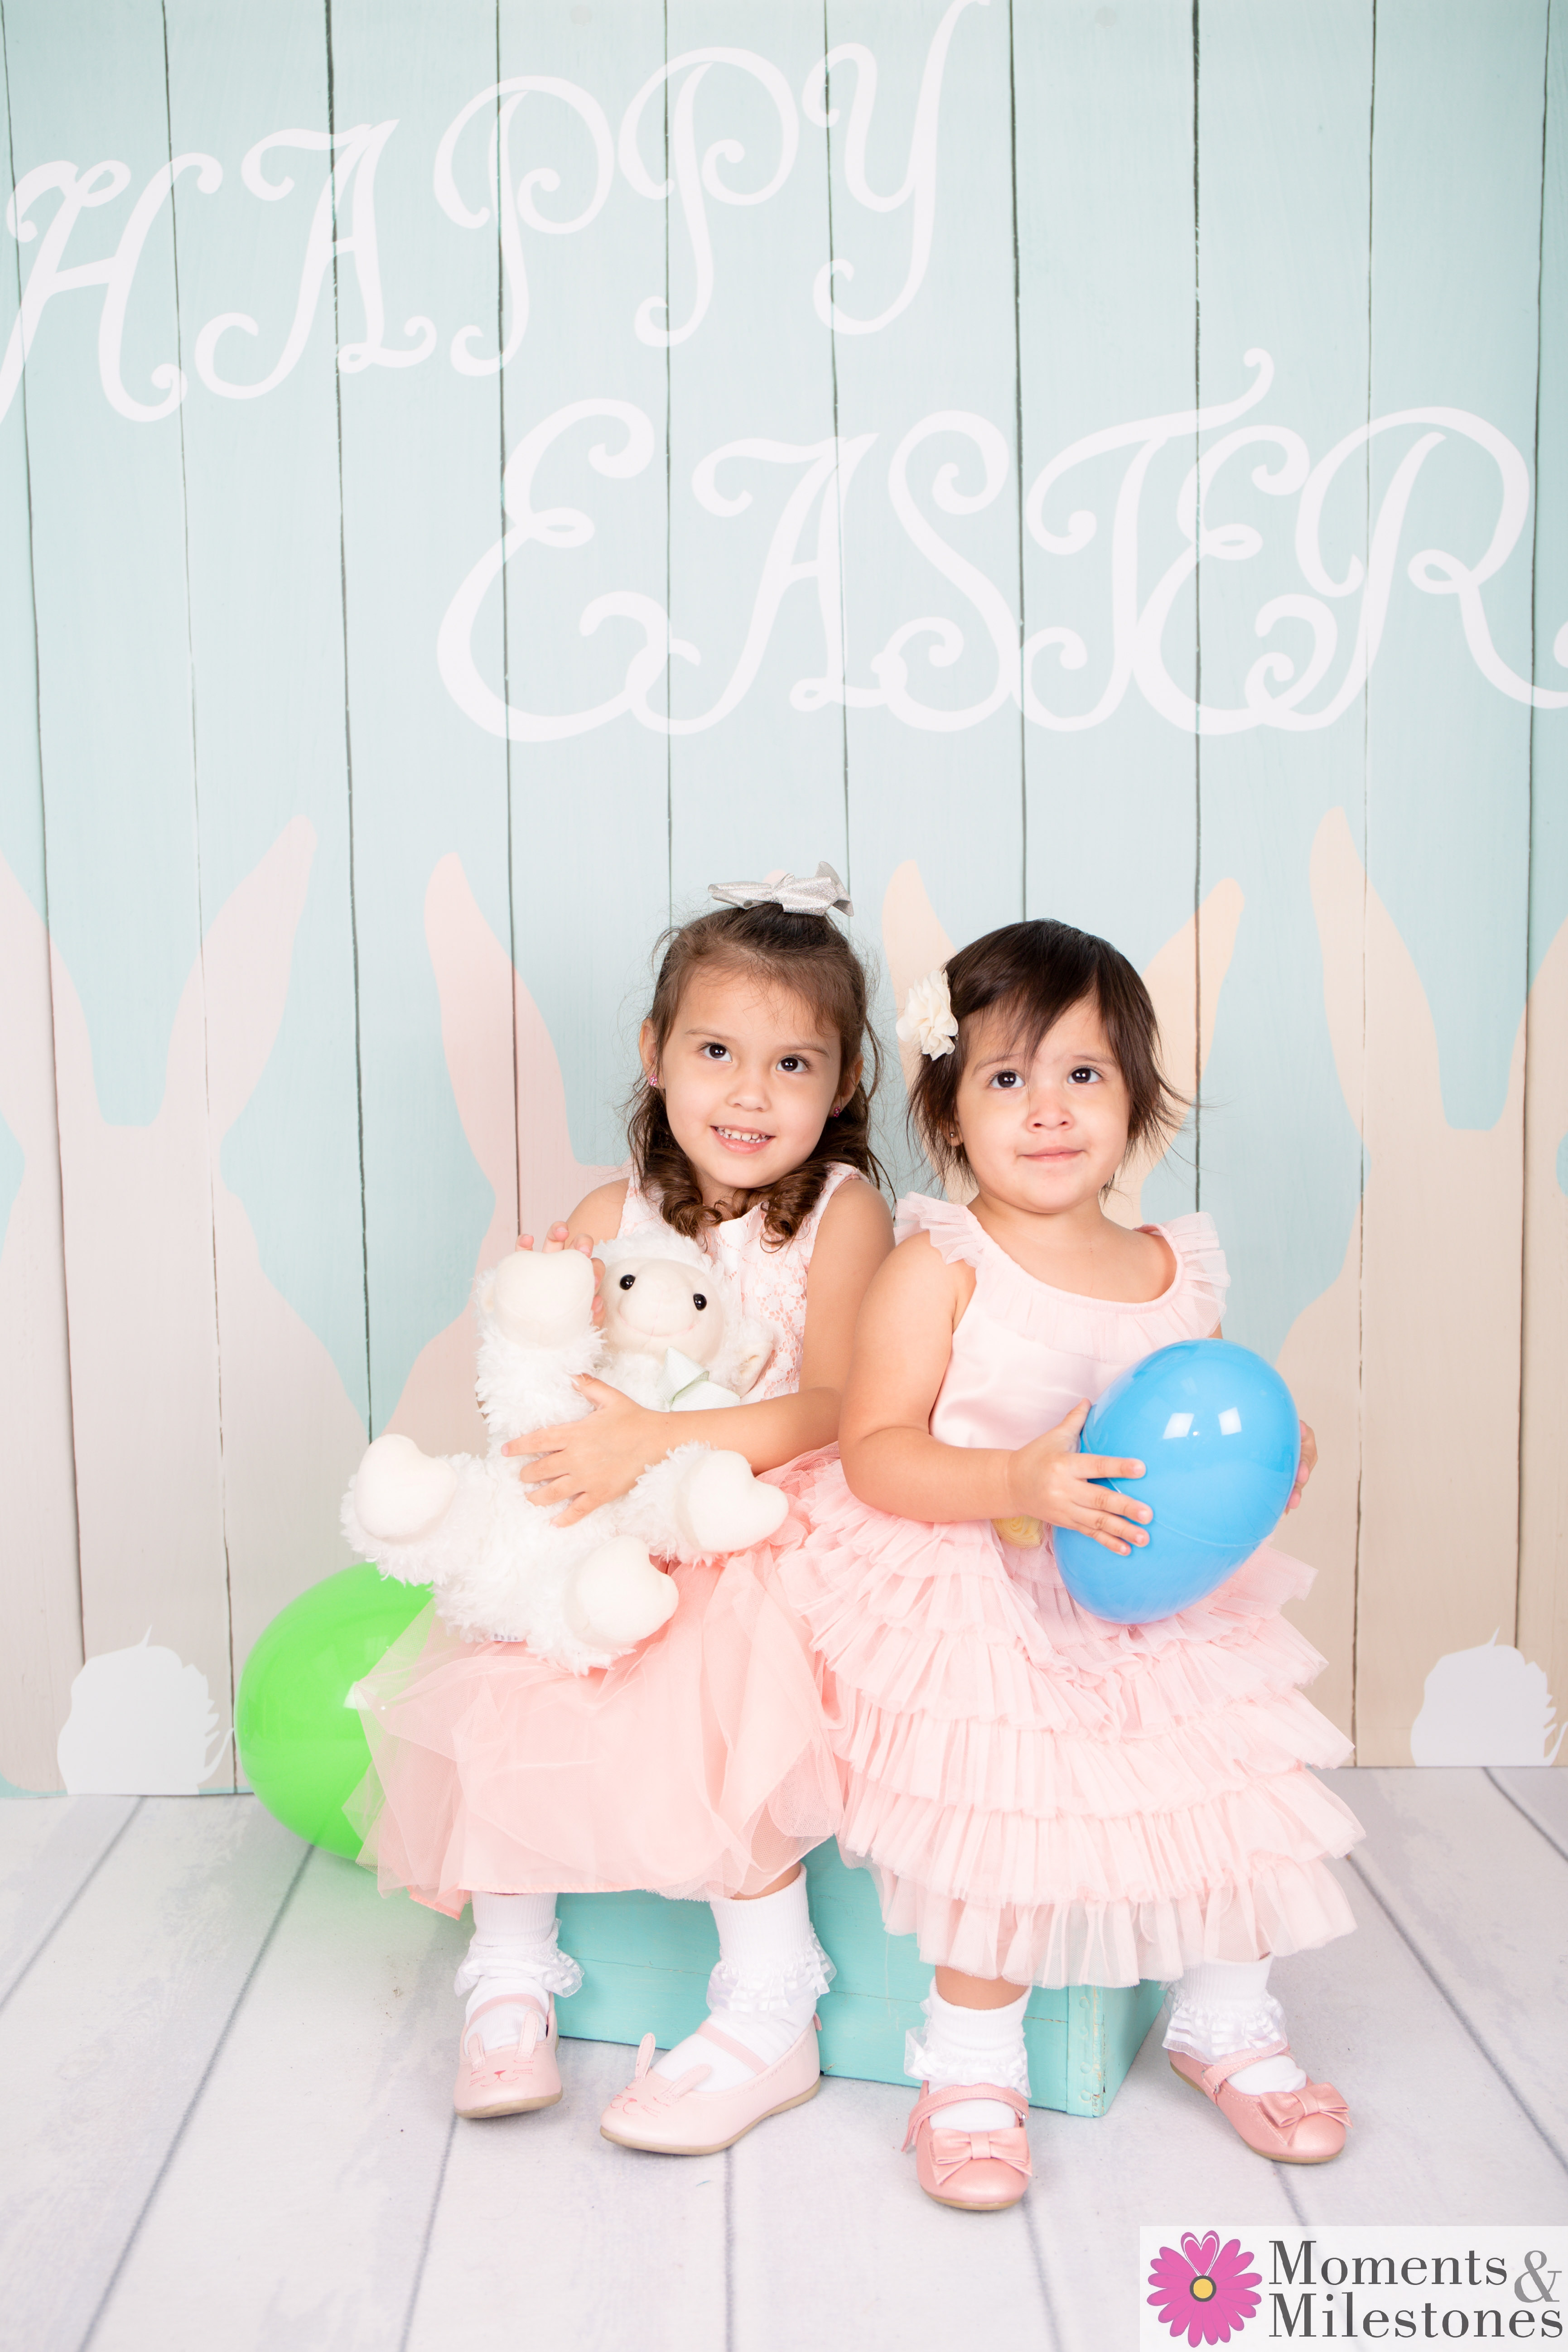 Easter Mini-Session Moments & Milestones Studio Photography San Antonio Family and Children Sessions (21)